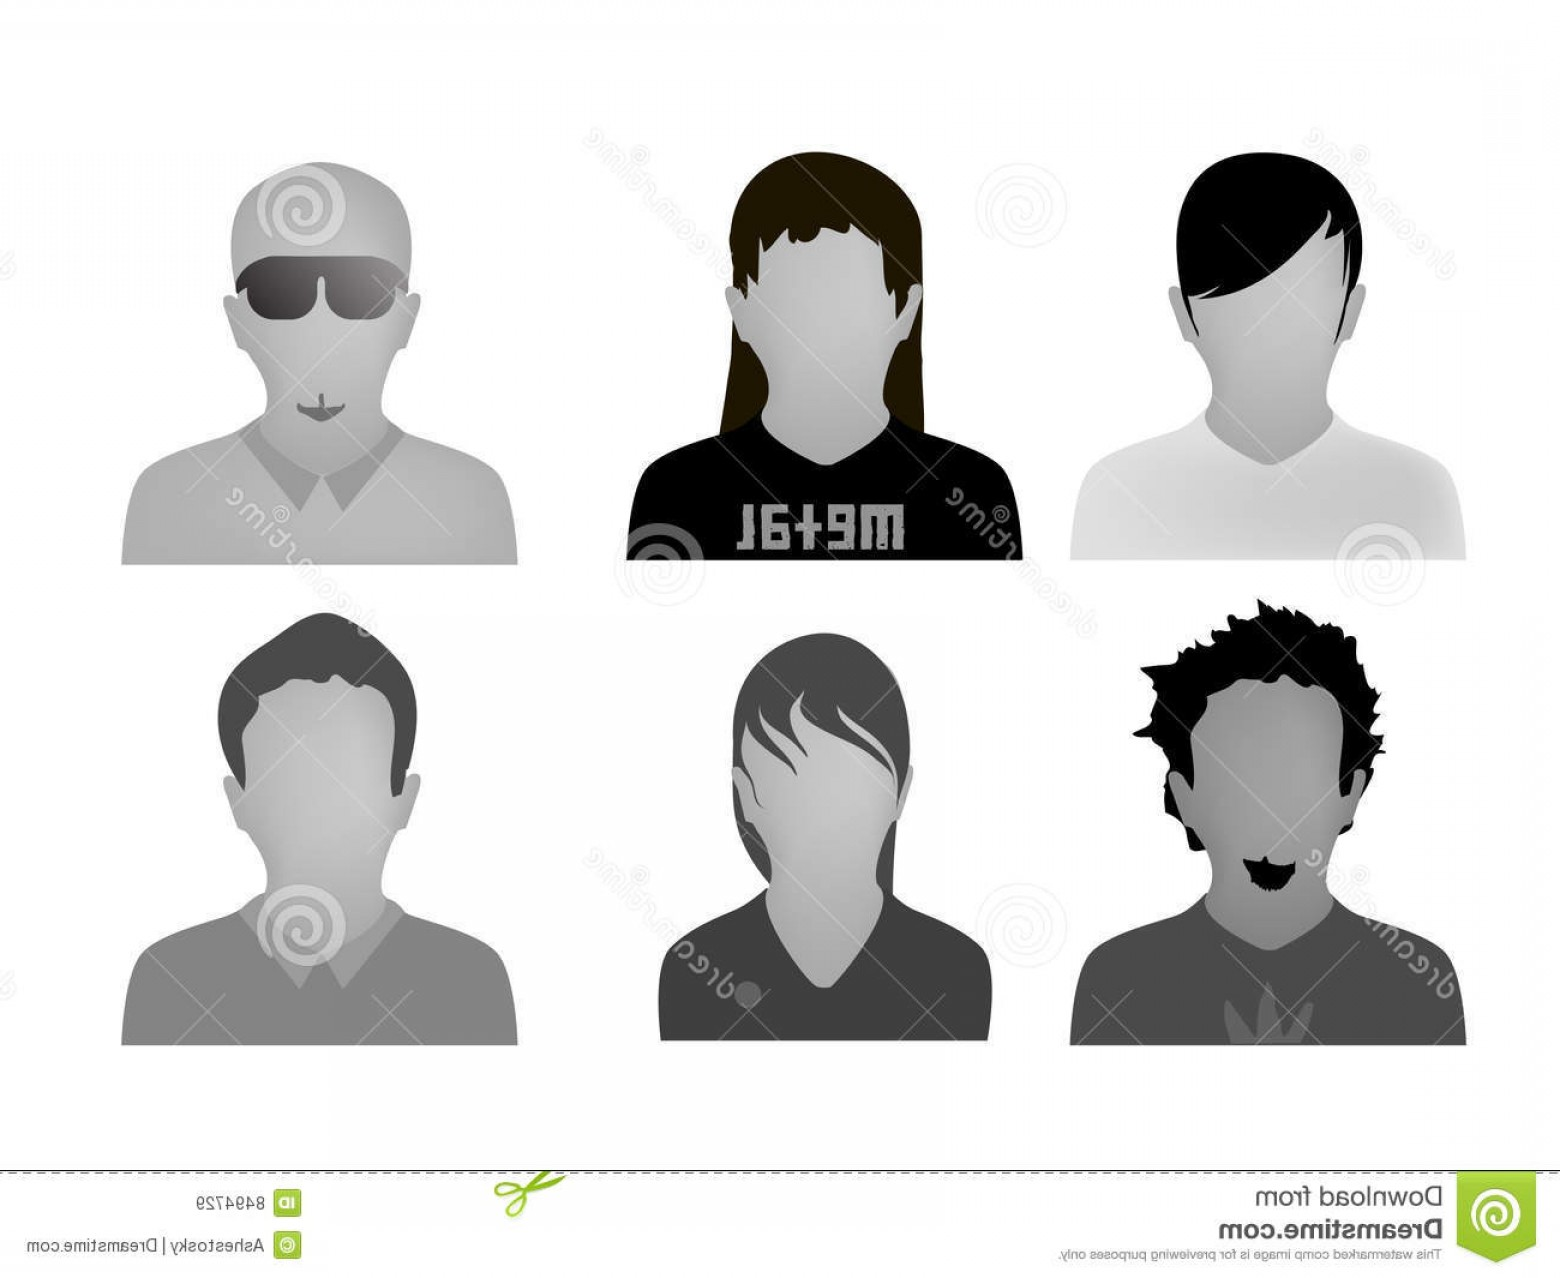 Teenage Icons Vector: Royalty Free Stock Images Teenage Styles Web Avatars Vector Image